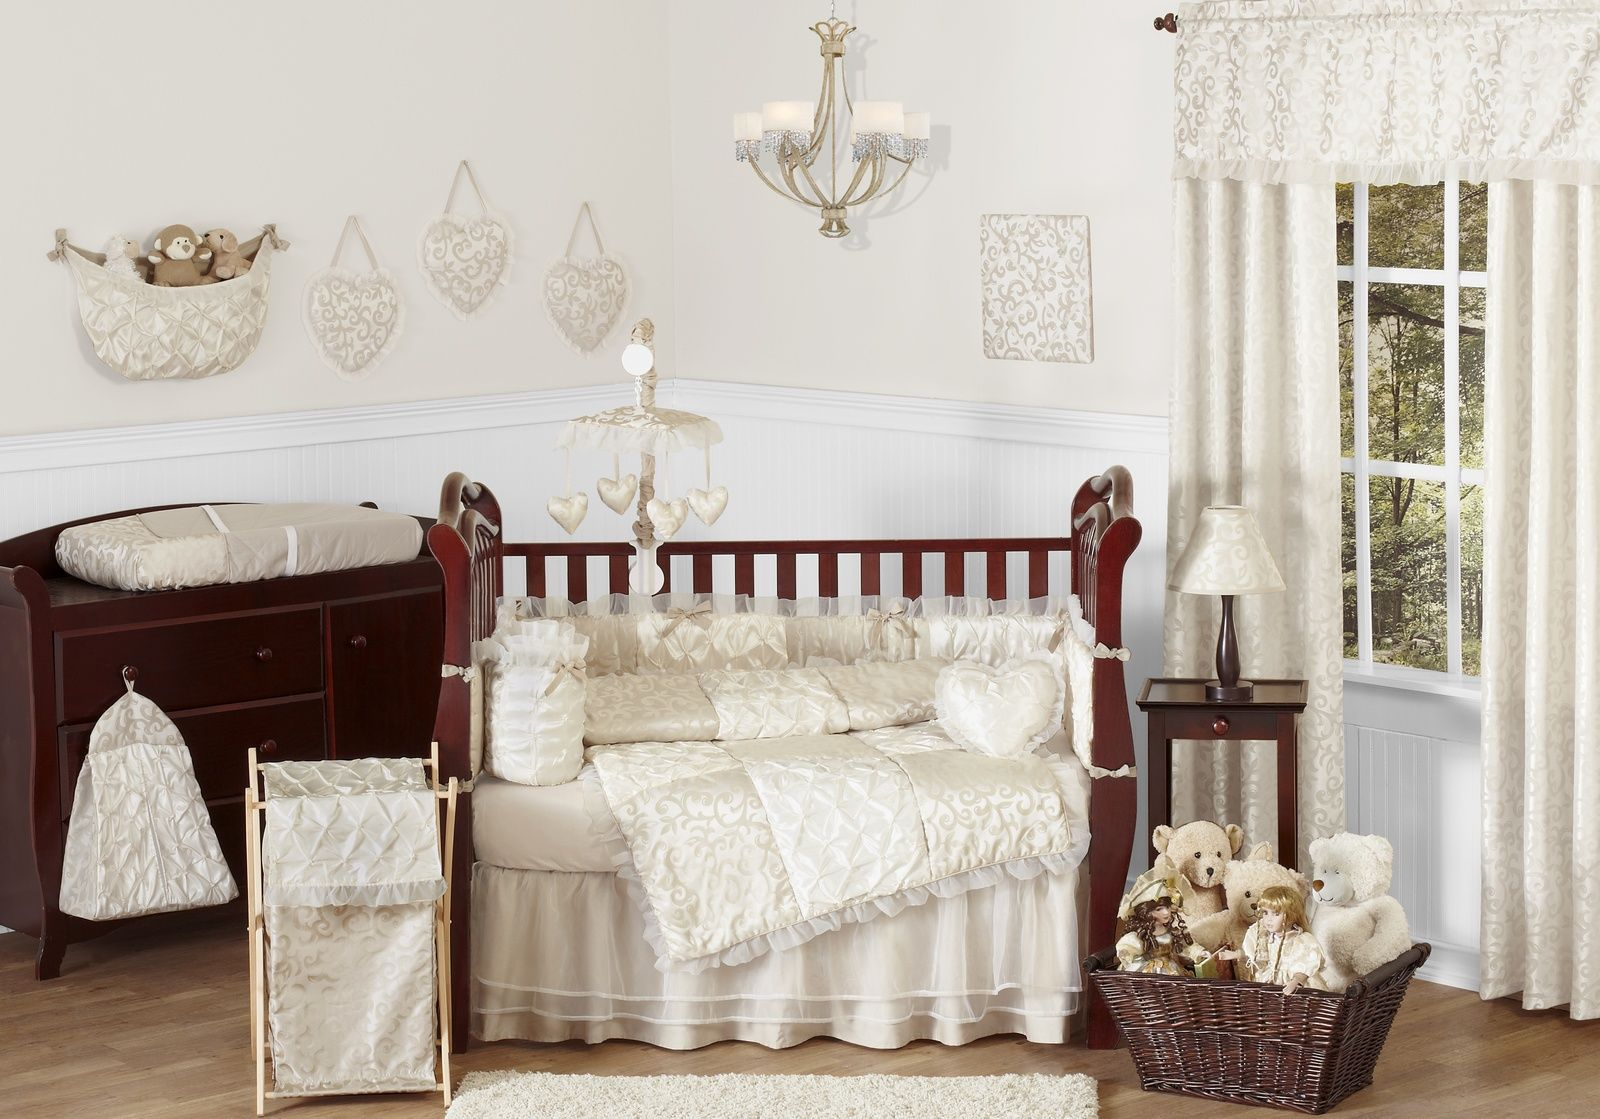 Champagne and Ivory Victoria 9-Piece Baby Crib Bedding Set by Sweet Jojo Designs